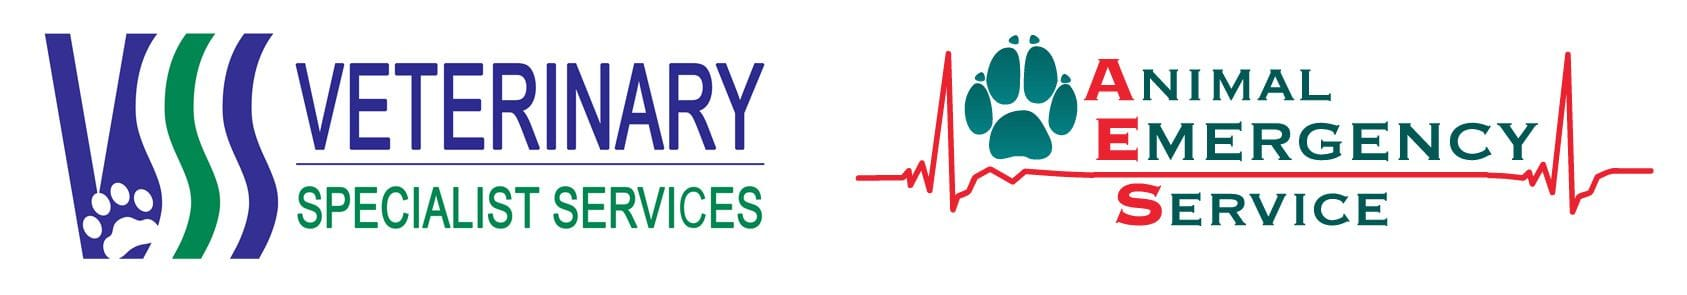 Veterinary Specialist Services Jindalee | Animal Emergency Services